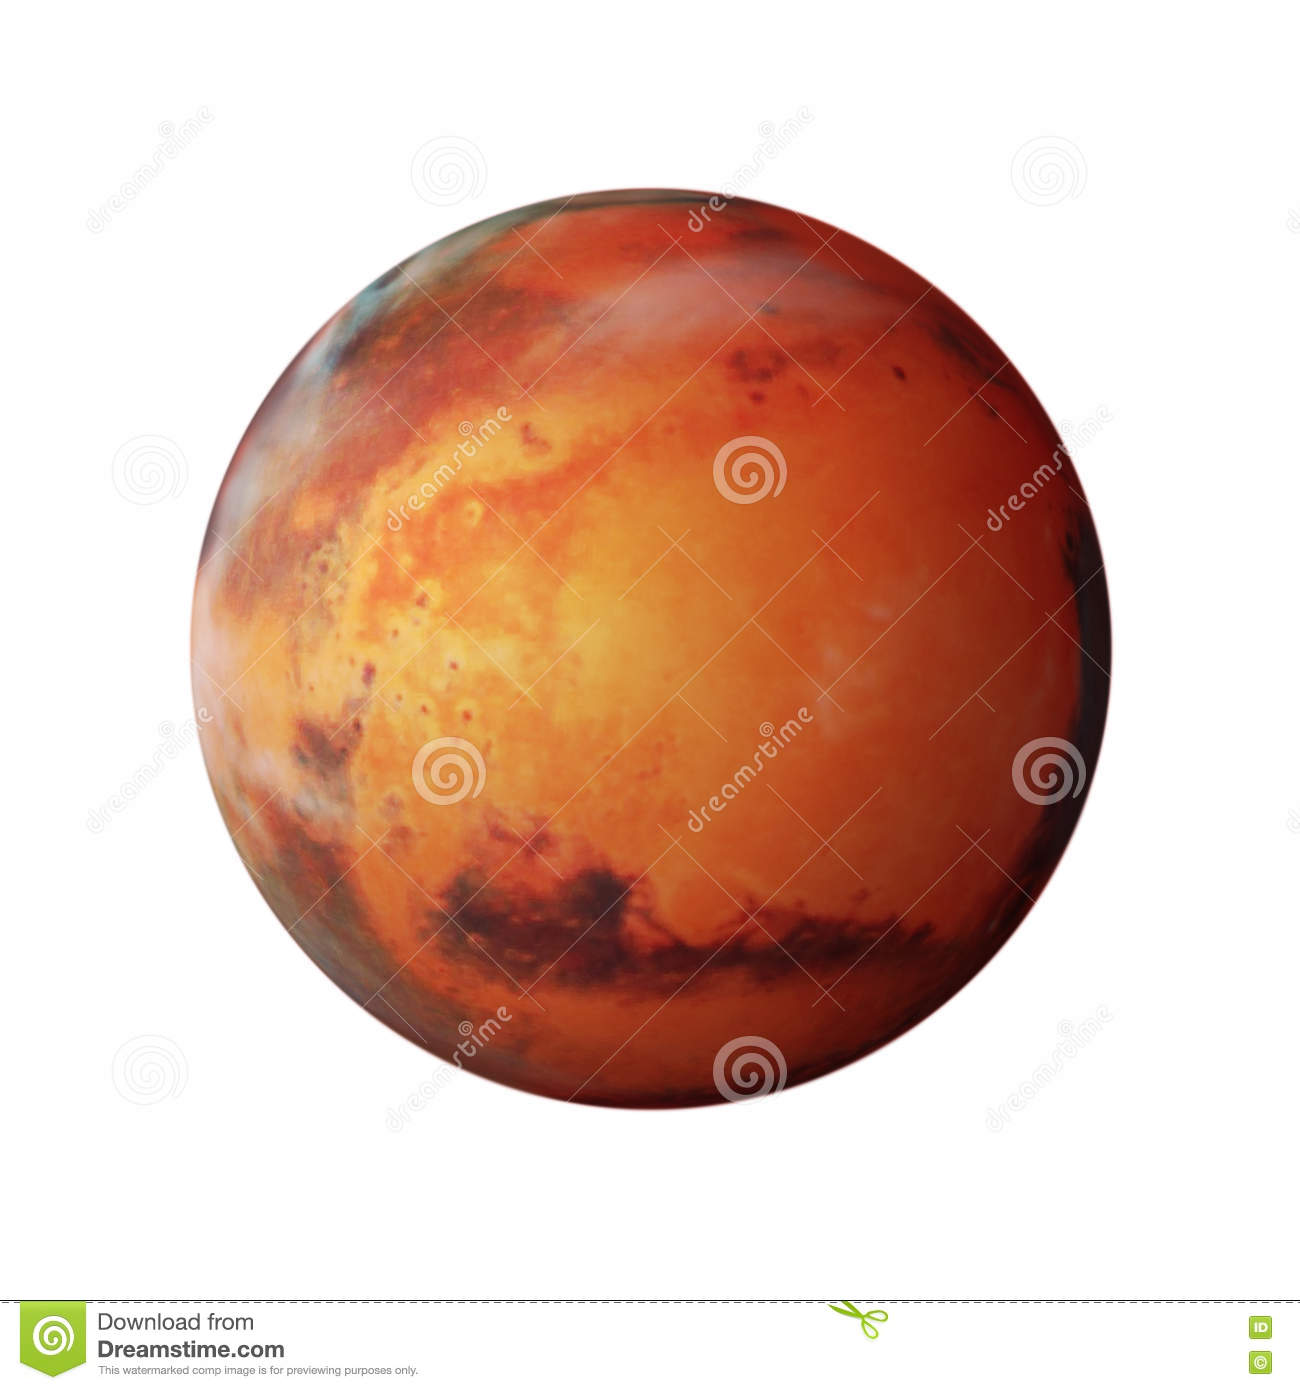 Planet Mars stock illustration. Image of space, orbit ...